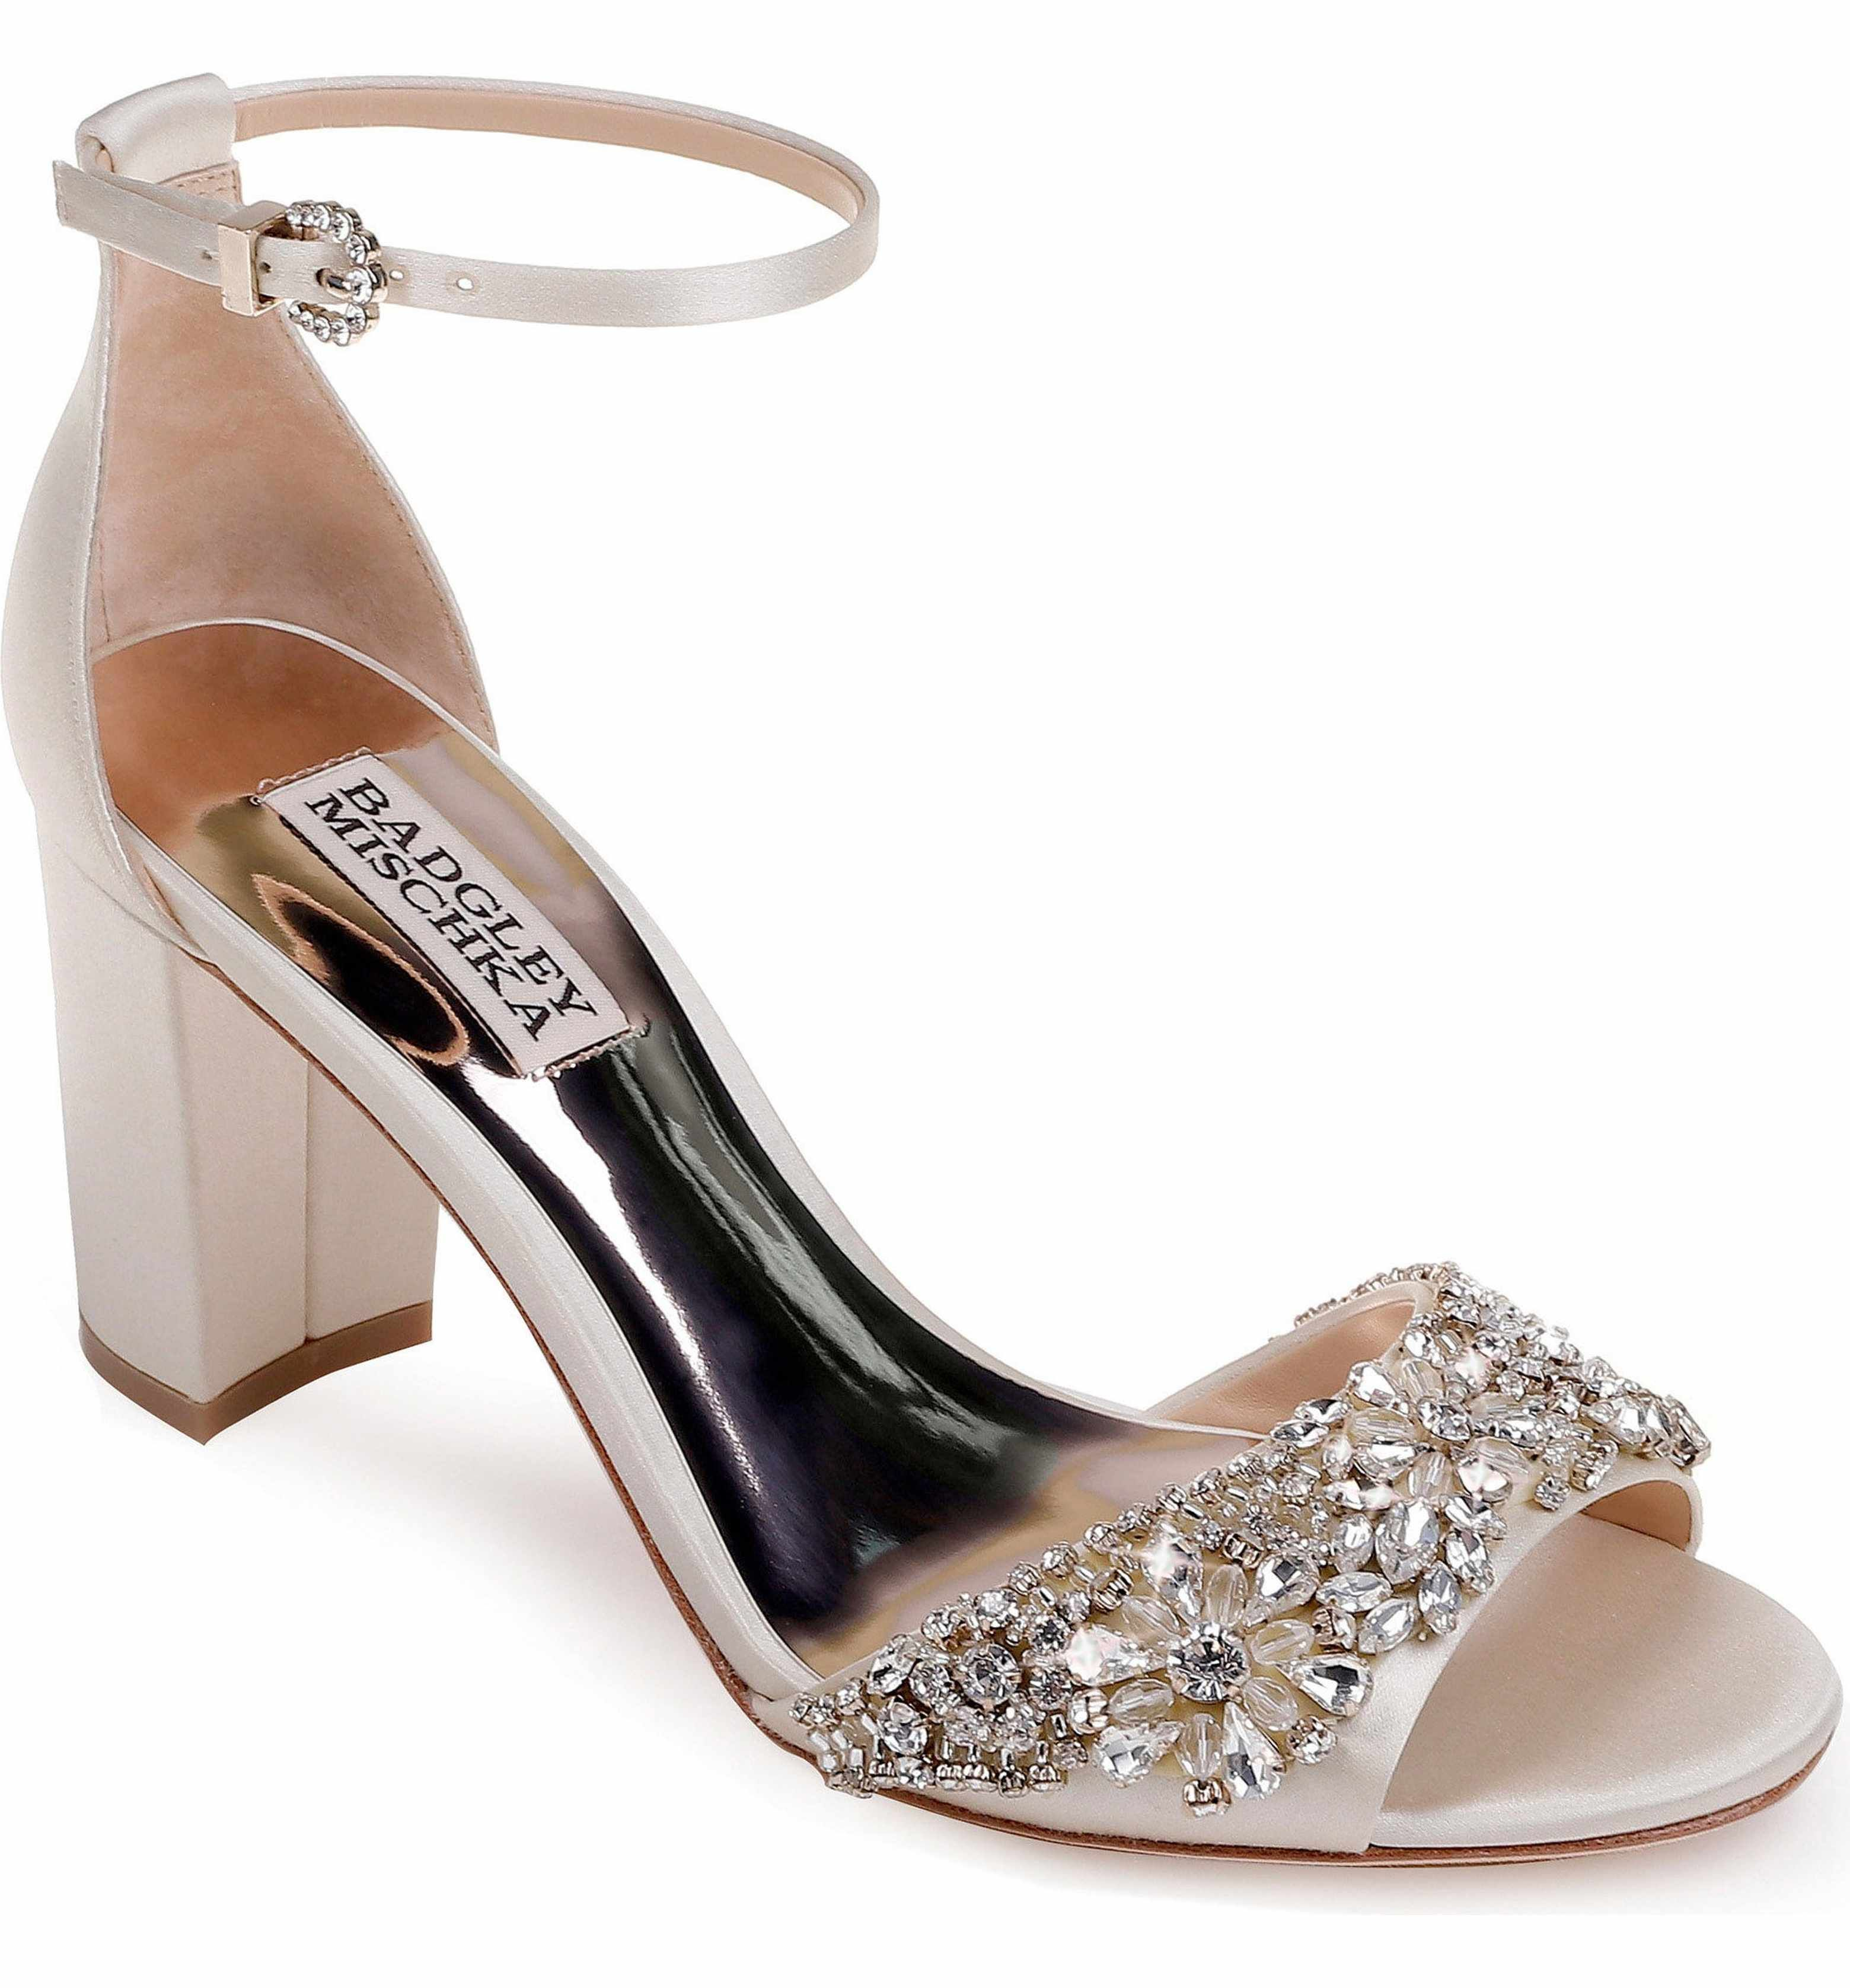 Main Image - Badgley Mischka Hines Embellished Block Heel Sandal (Women)